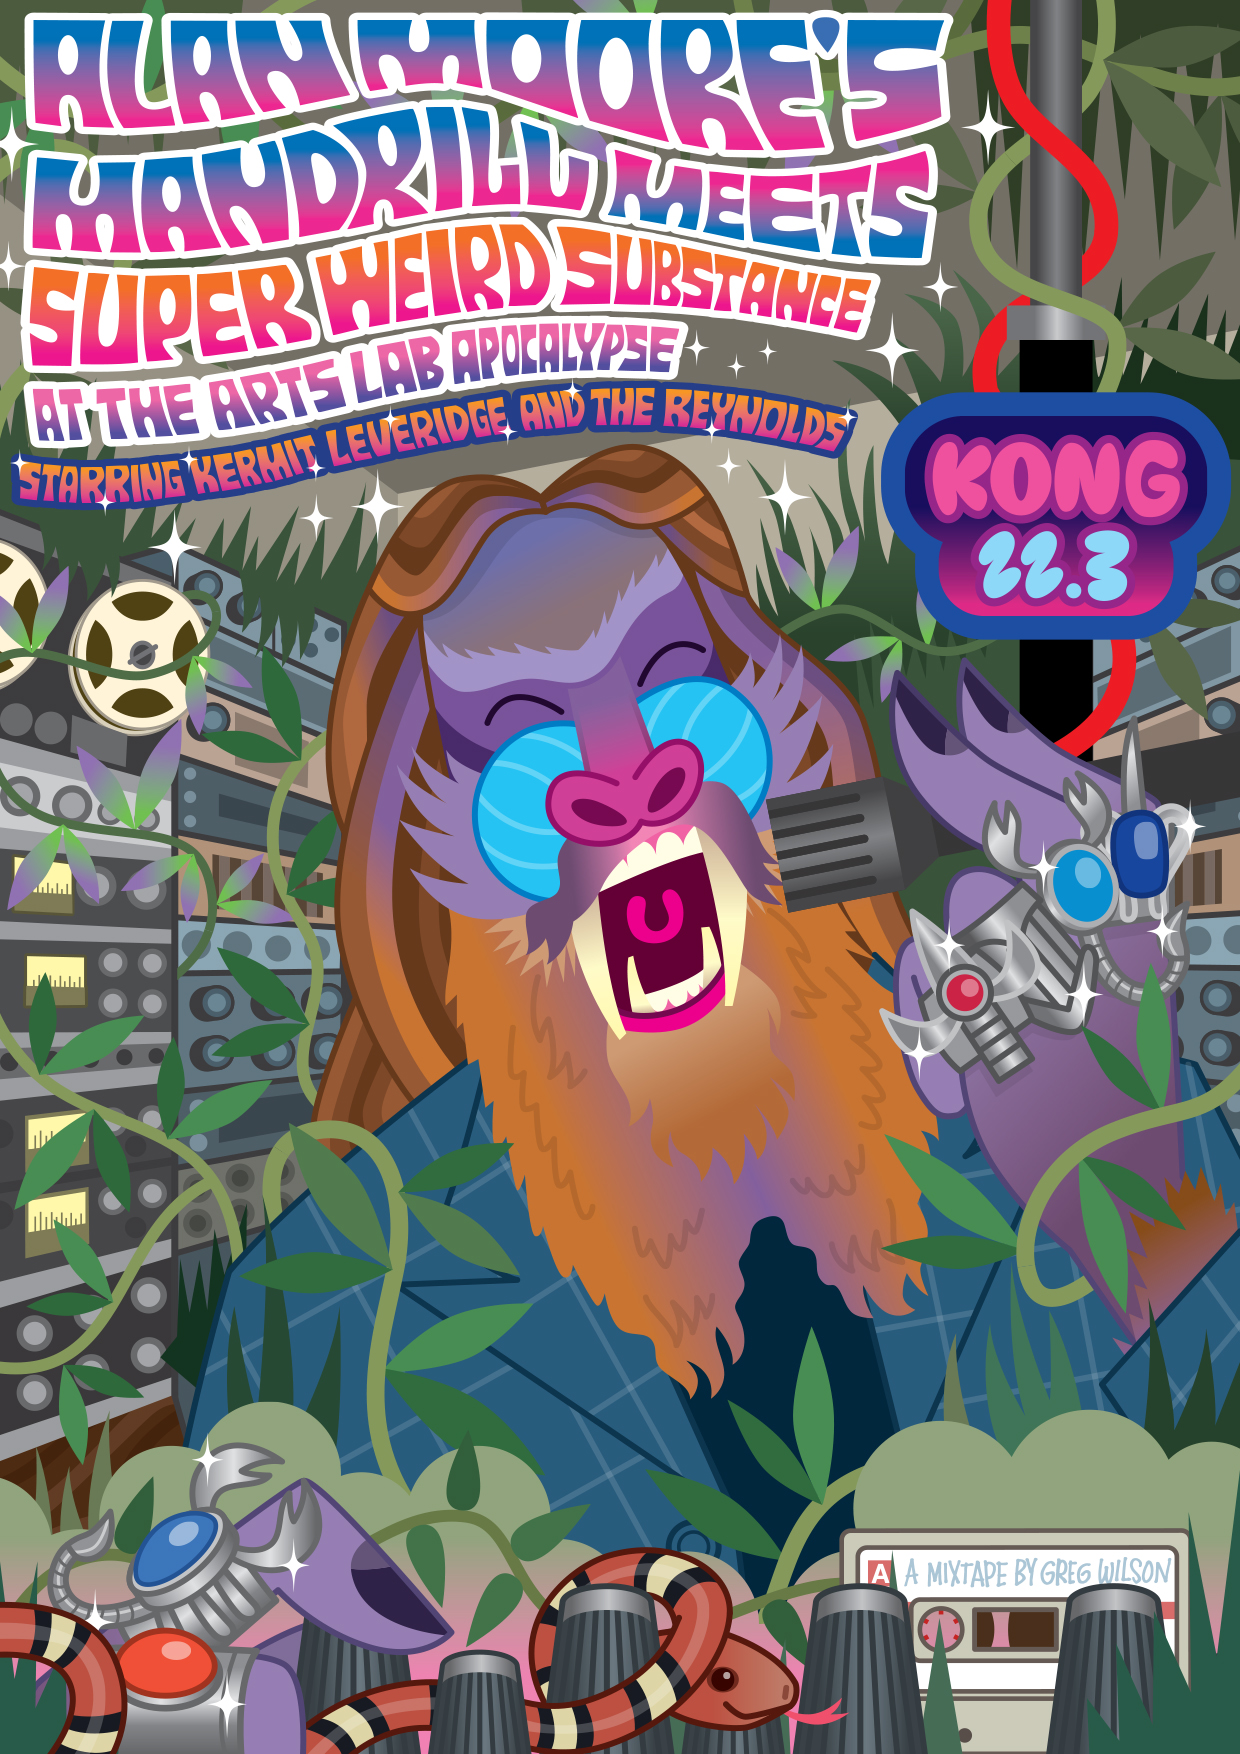 Alan Moore's Mandrill Meets Super Weird Substance At The Arts Lab Apocalypse